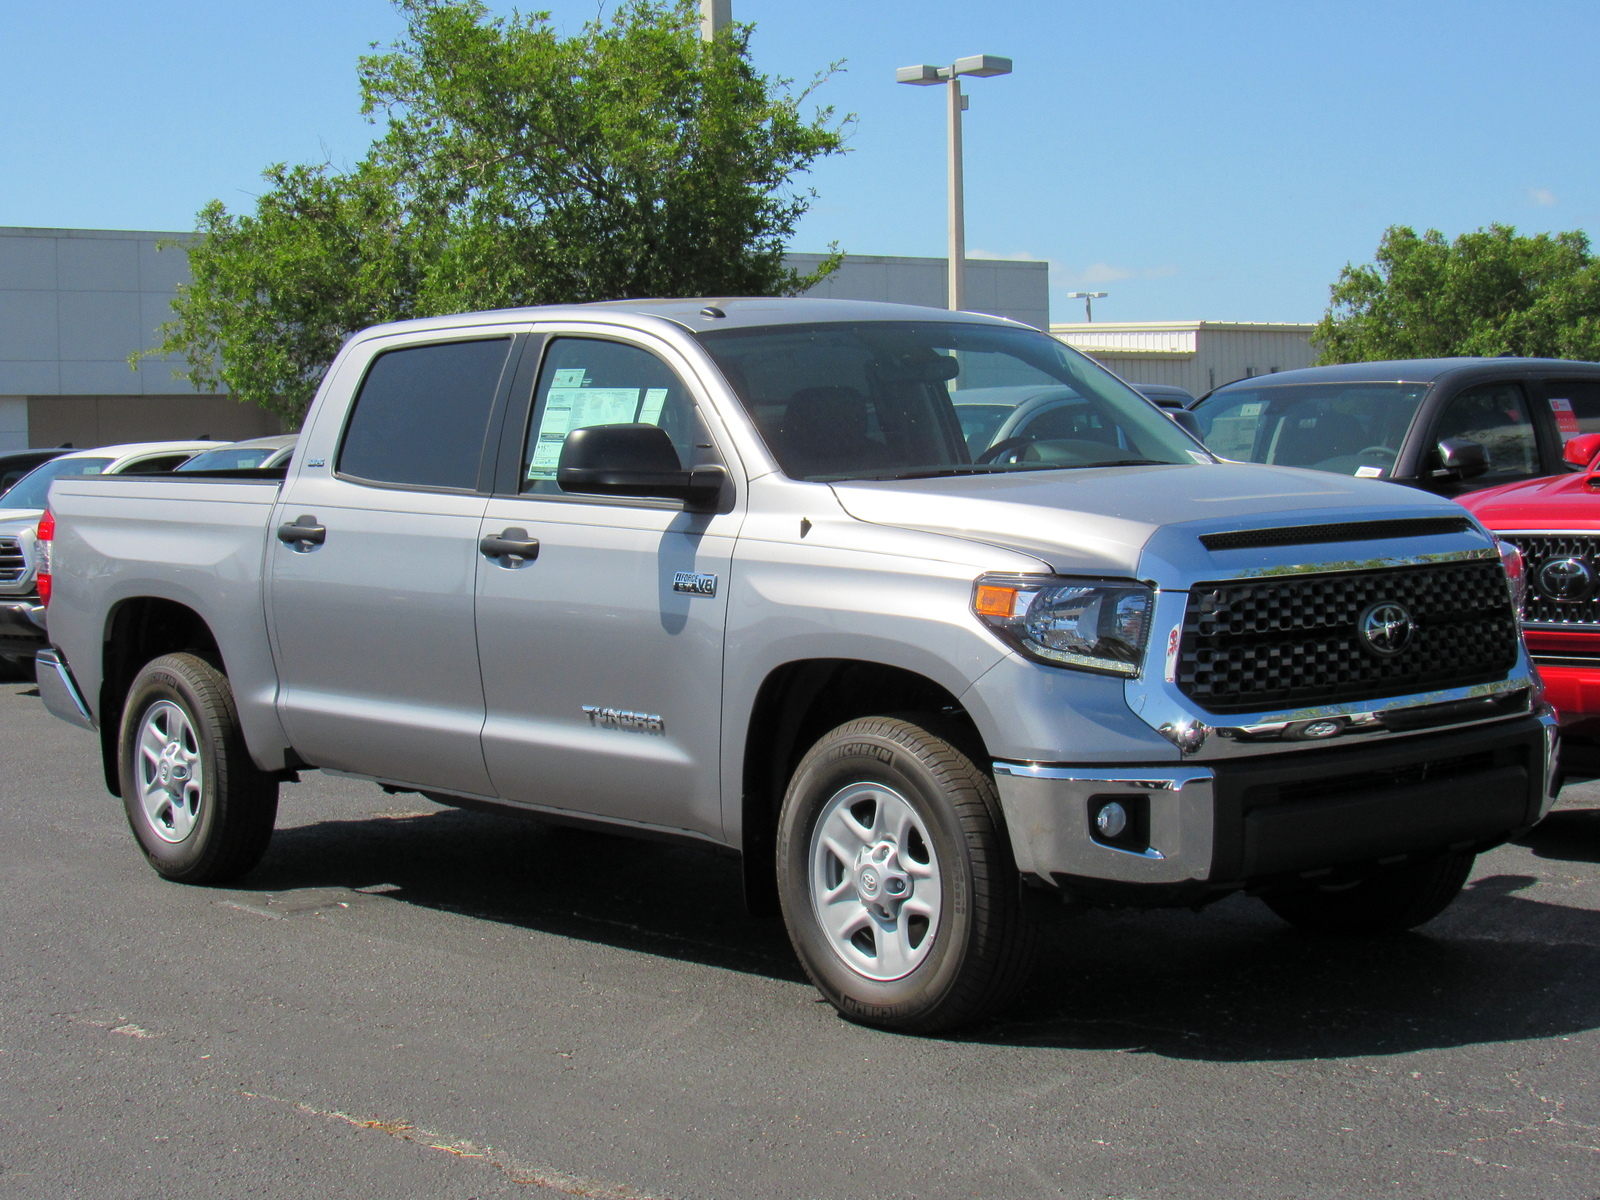 east crewmax inventory in petersburg edition new tundra toyota